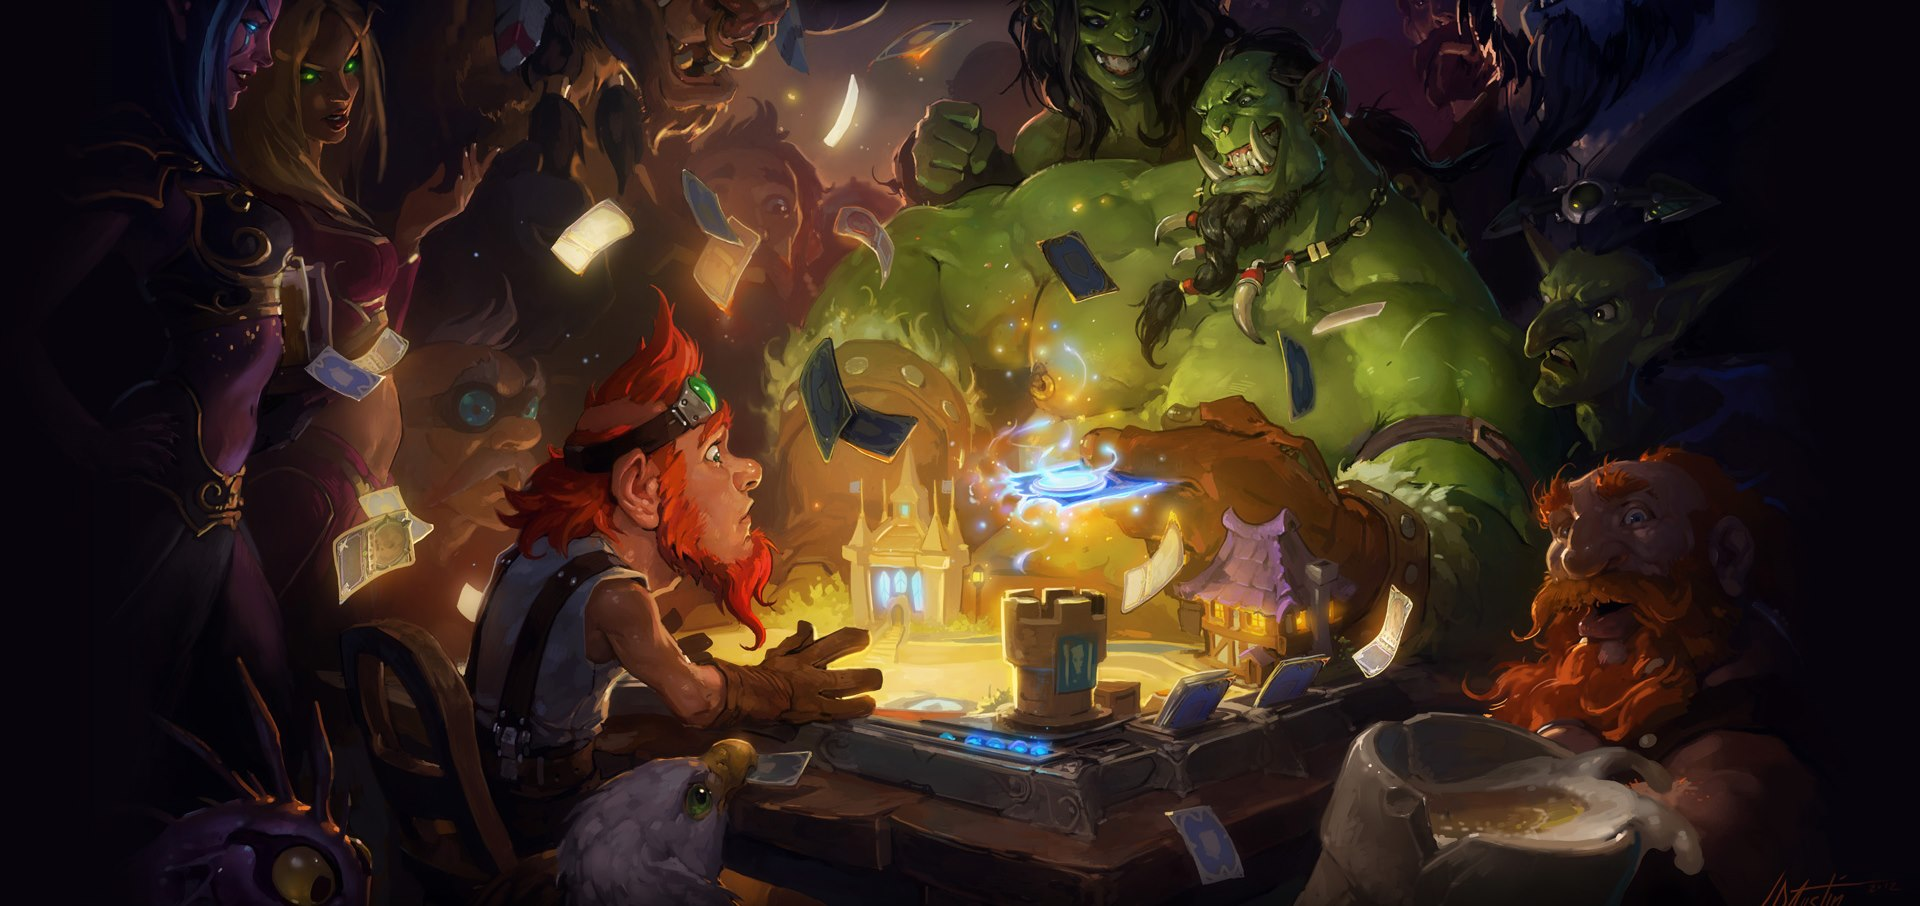 Hearthstone's next add-on will be a full expansion with over 100 new cards